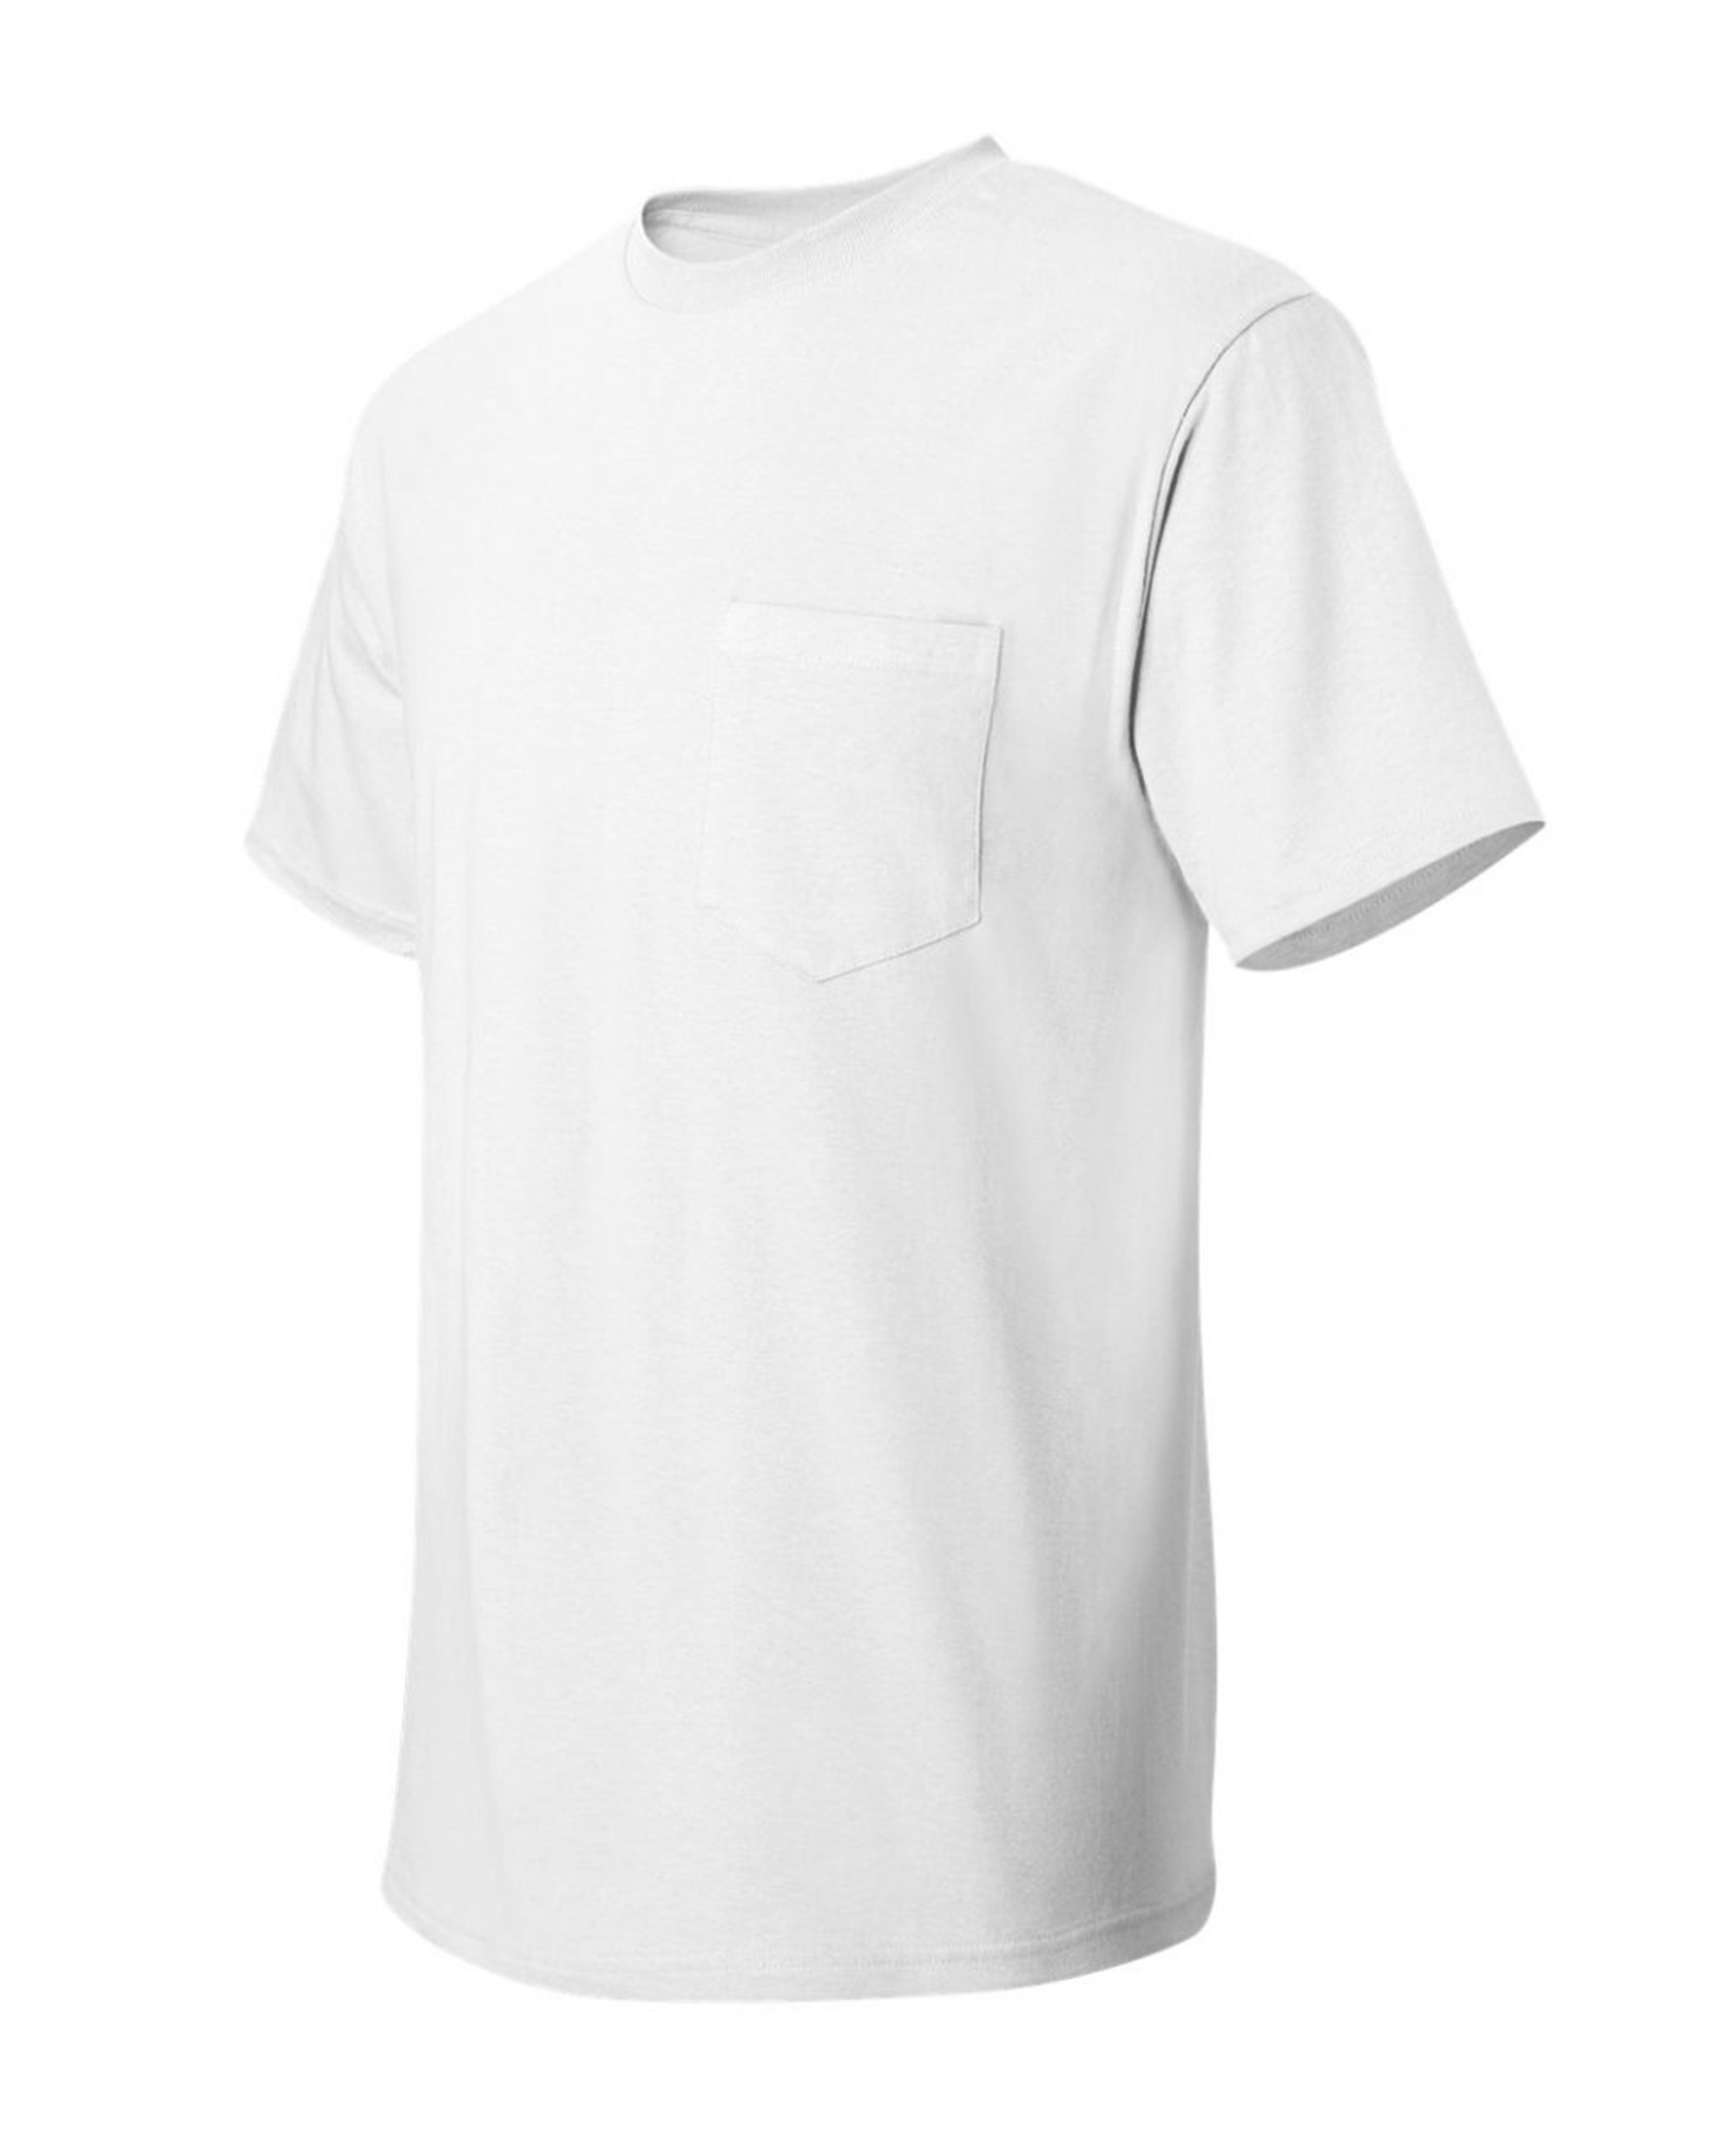 5 pack Heavyweight Pocket T-shirt - T-Shirts - Hanes - BRANMA